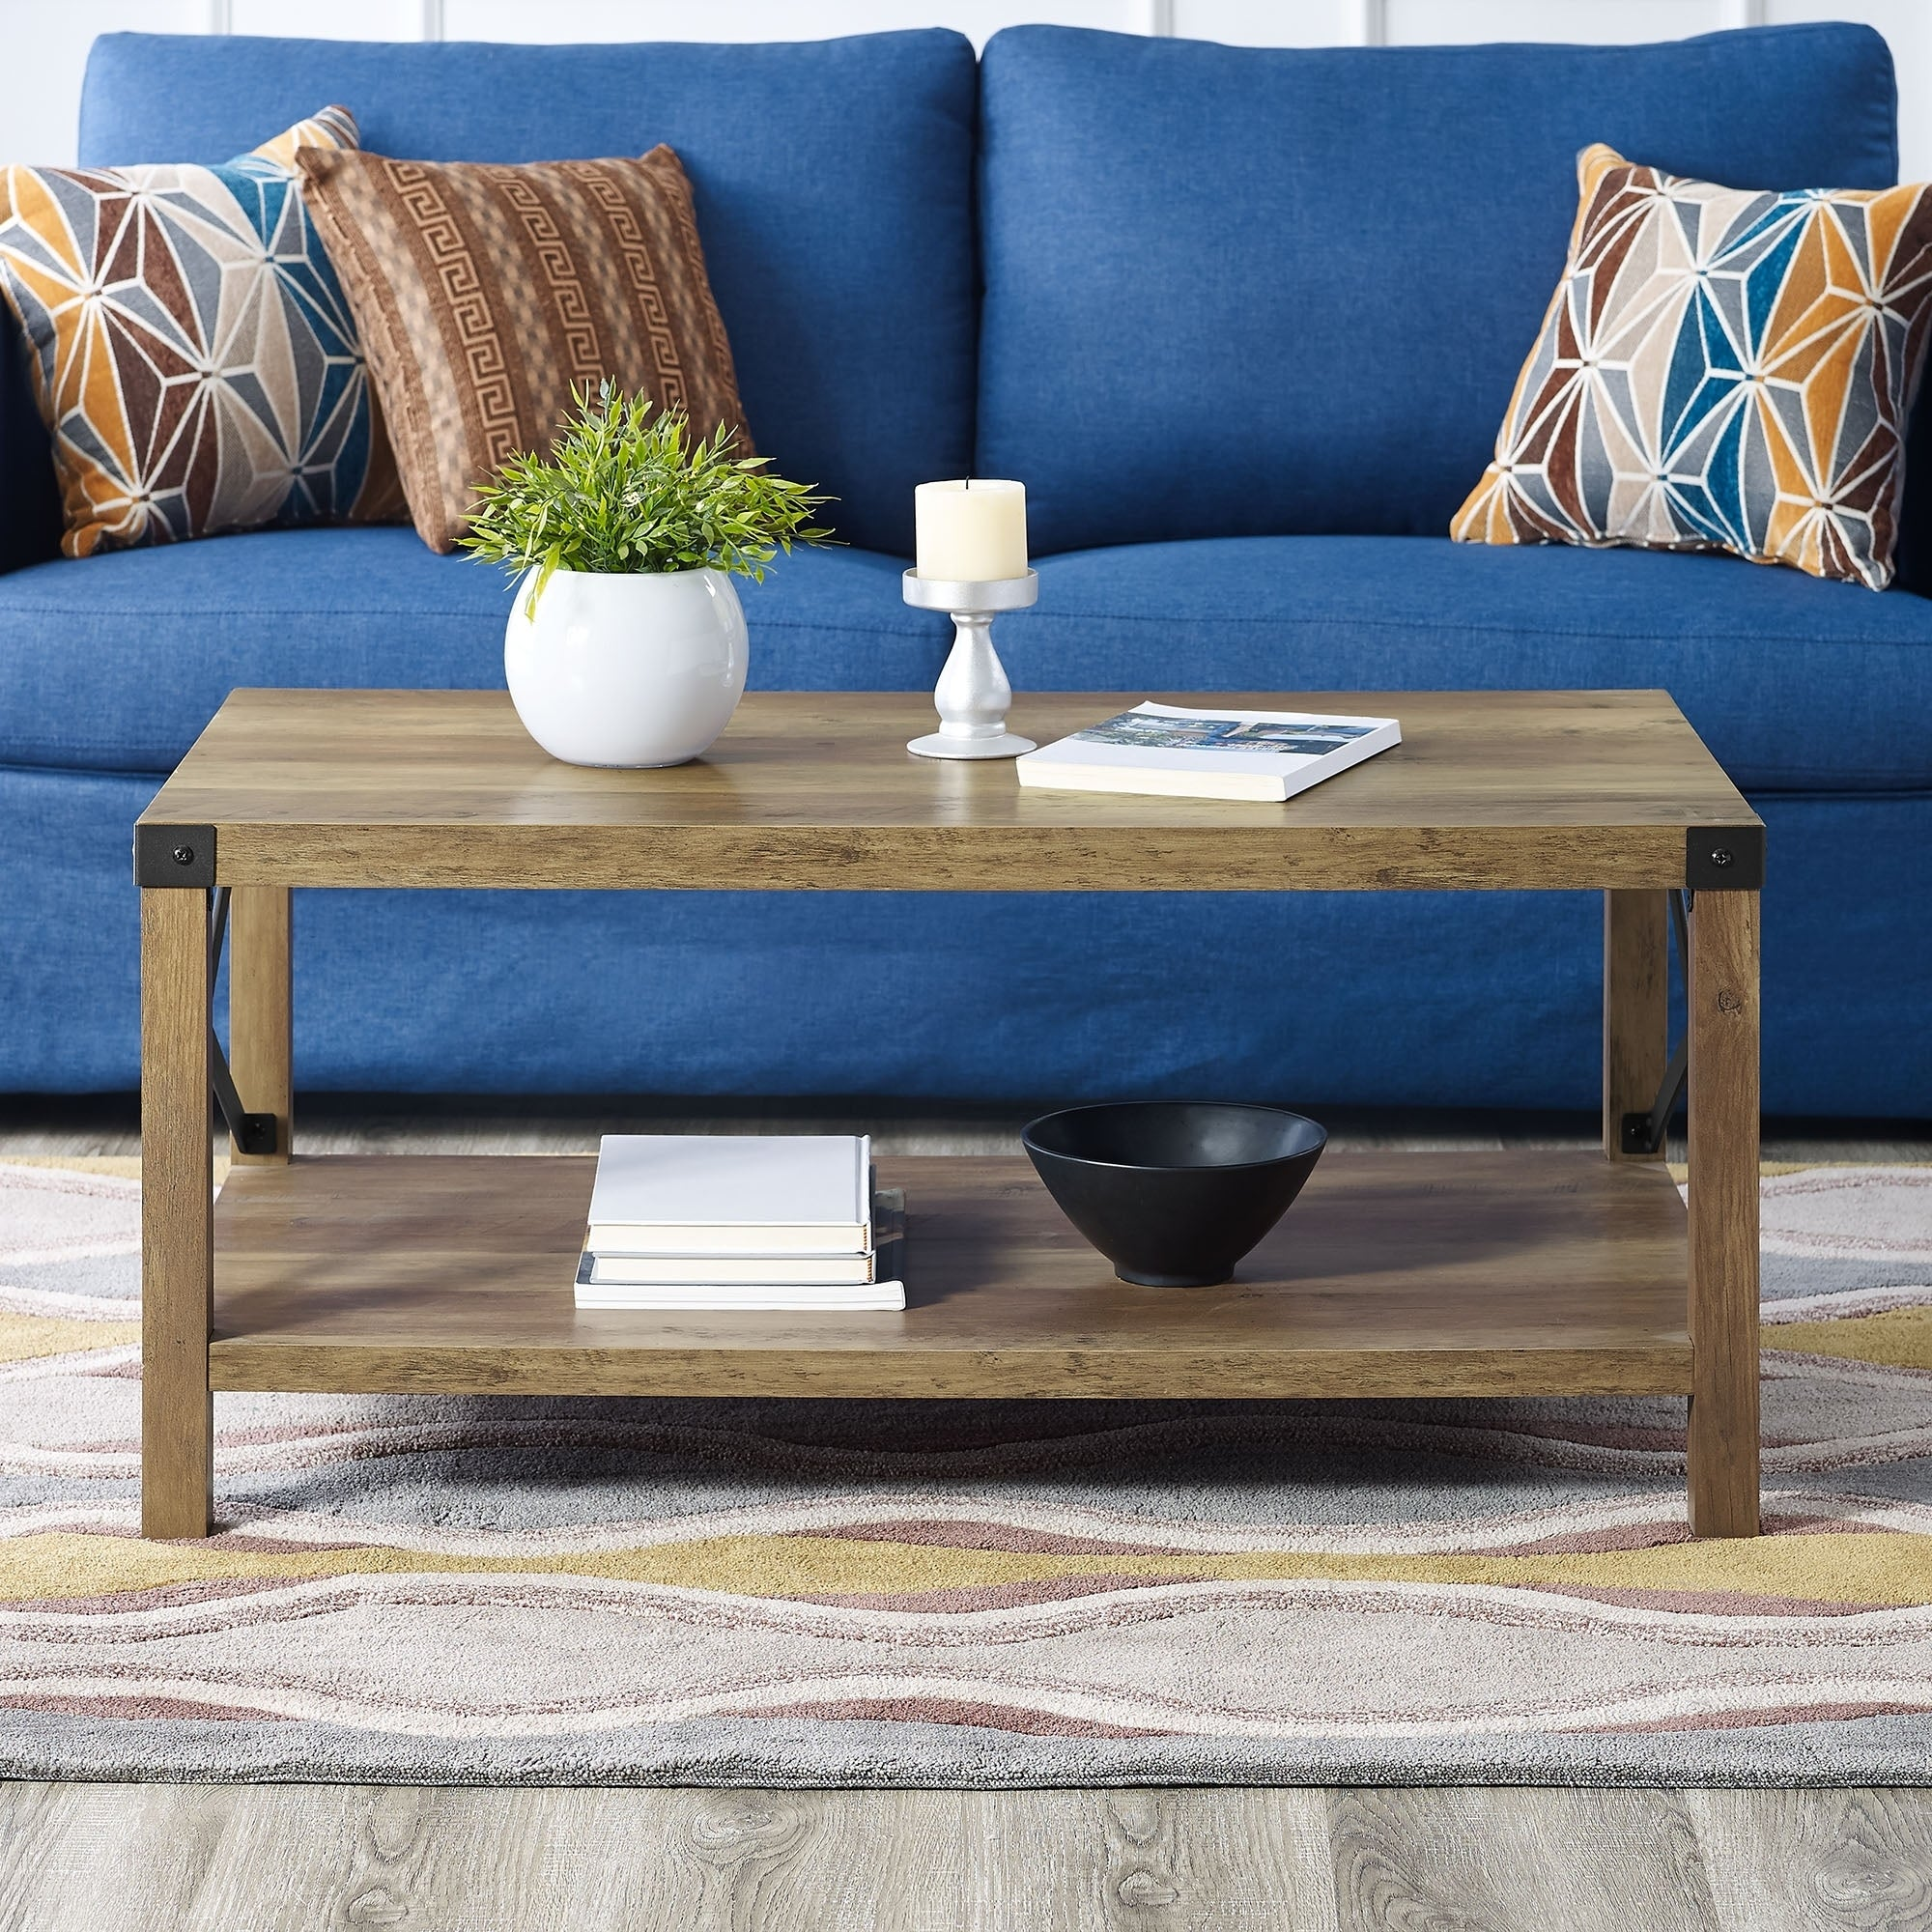 40 Metal X Coffee Table 22 18h On Free Shipping Today 21665712